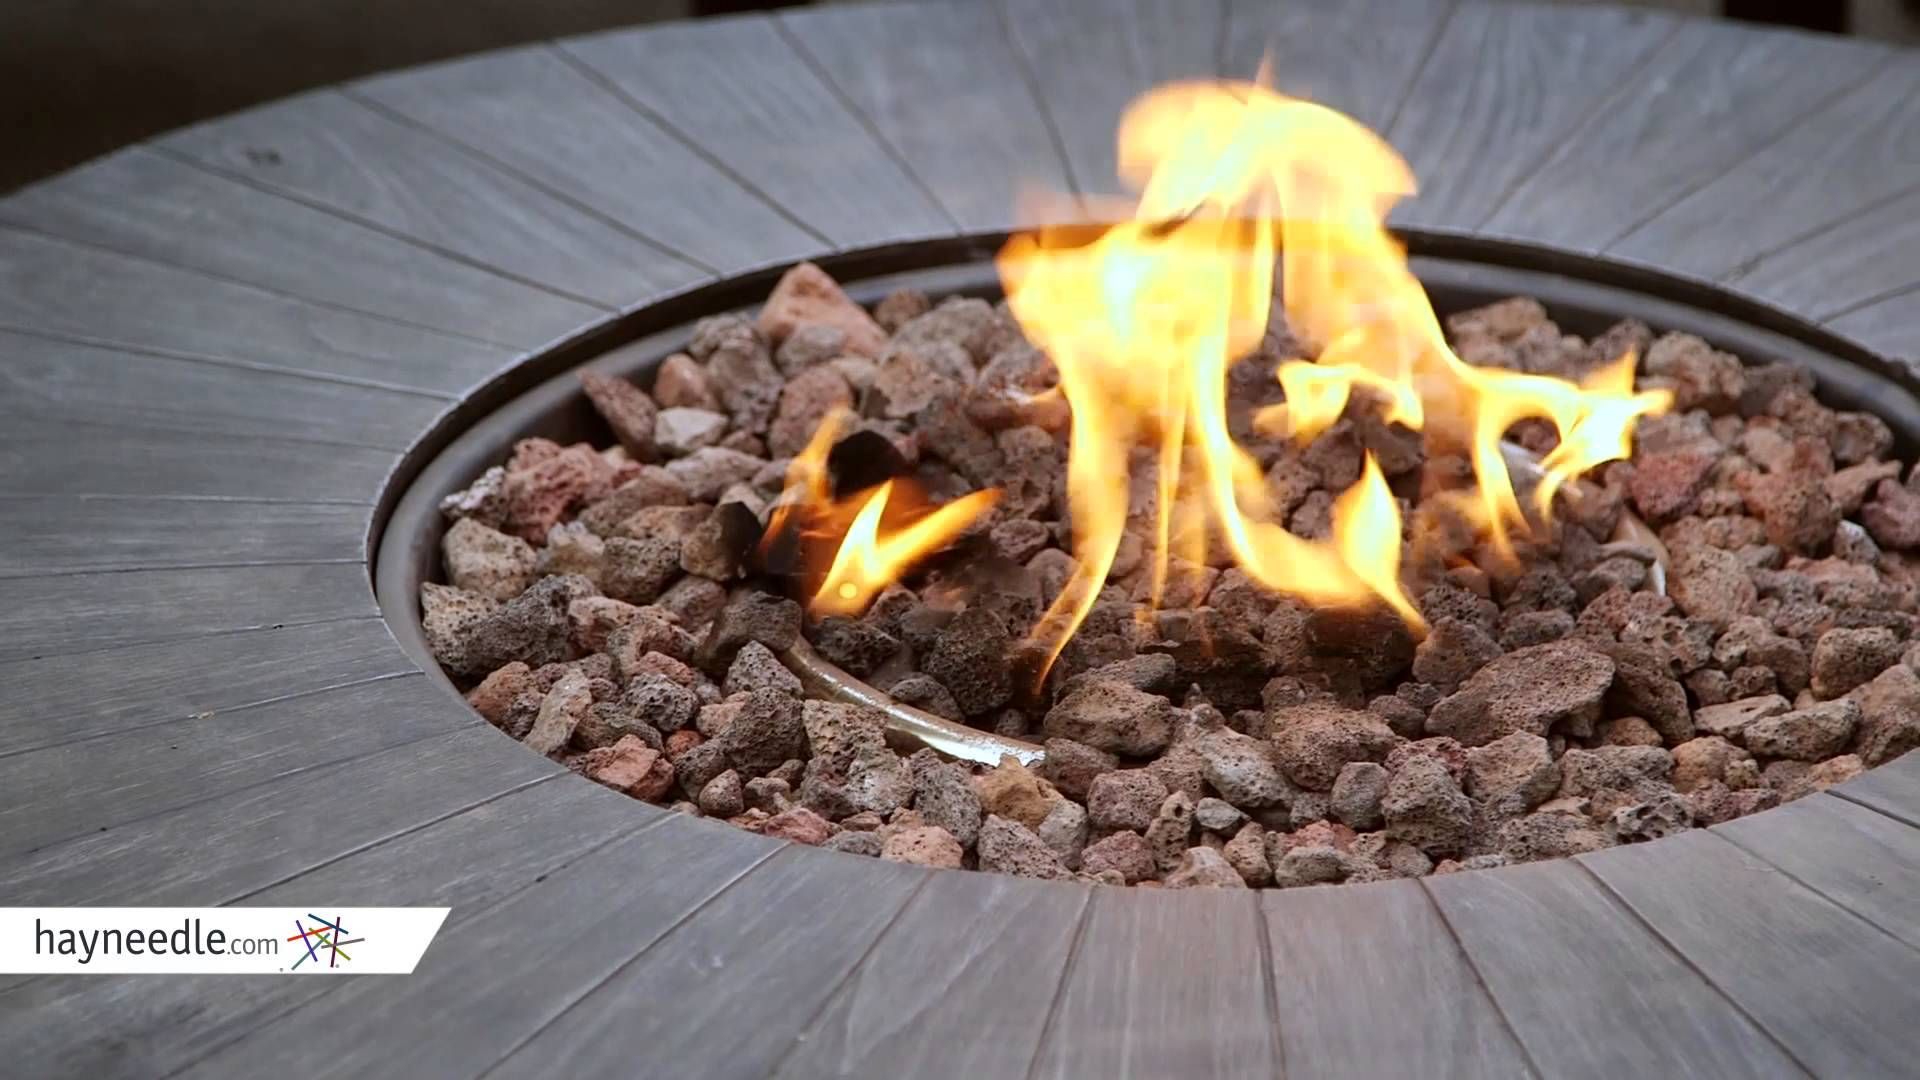 Red Ember Whitehall 40 in. Gas Fire Table with FREE Cover ... on For Living Lawrence Fire Pit id=86515